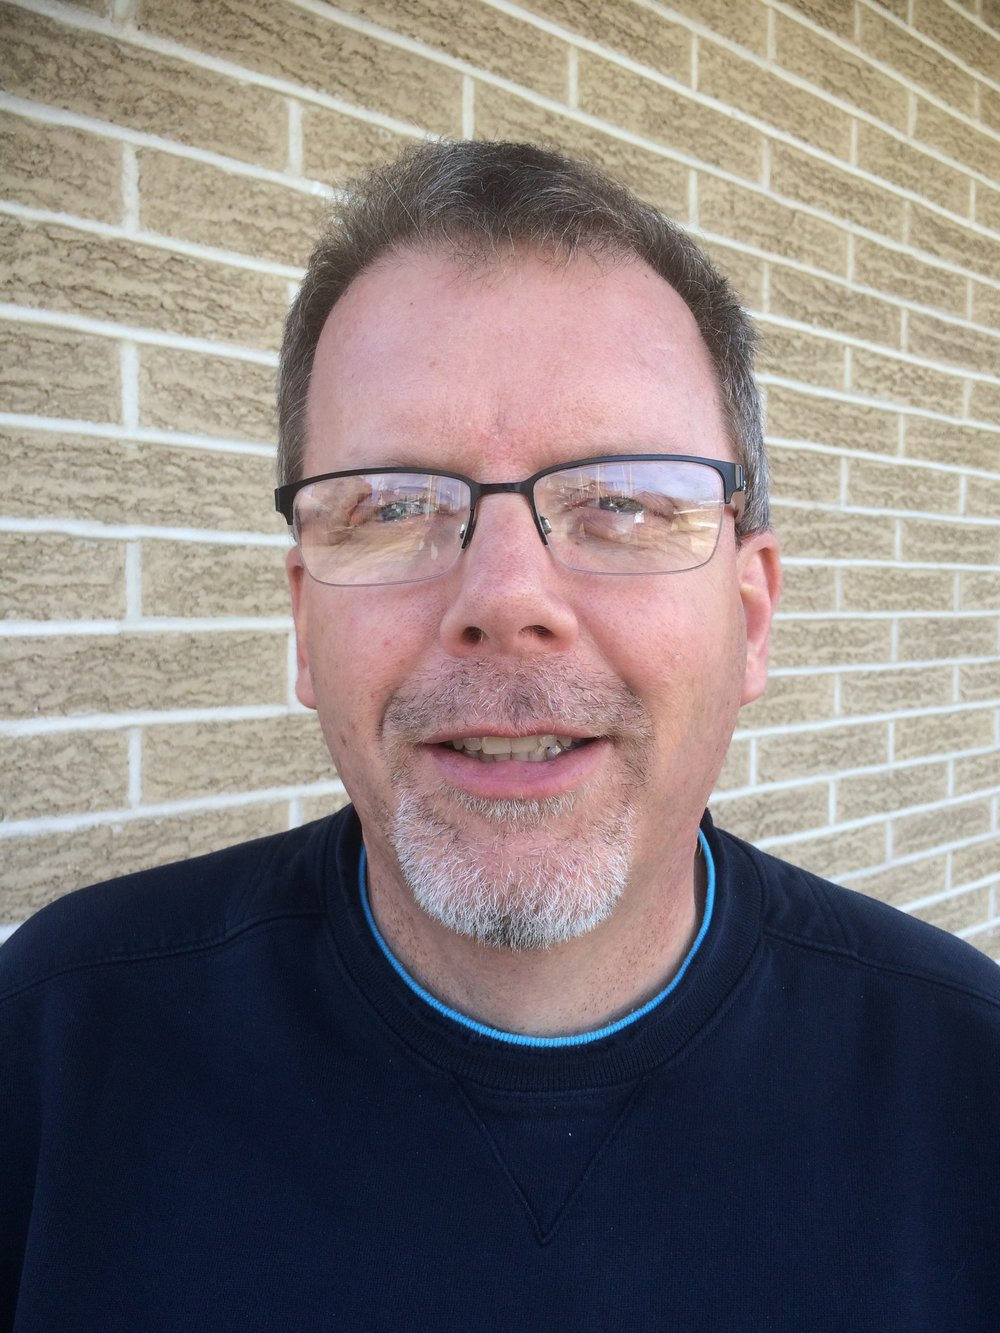 - CHUCK REYNOLDS, NRCS DISTRICT CONSERVATIONISTChuck is the District Conservationist for Holmes and Coshocton counties with the USDA Natural Resources Conservation Service.  He began his career as a summer trainee in 1981 with the Soil Conservation Service and has been located in Ashland, Delaware, Harrison, and Fairfield counties prior to moving to Holmes County August of 1984.  He graduated from The Ohio State University in 1983 with a Bachelor of Science degree in agriculture.   Chuck is married to Beth (Oswald) and resides near Berlin.  Chuck and Beth have two sons, Luke and Cole located in Columbus.  He also has a 215 acre farm in Knox County that he owns in partnership with his dad and brother. Many conservation practices have been implemented and maintained as part of the operation. Contact Chuck at 330-674-2811 or chuck.reynolds@oh.usda.gov